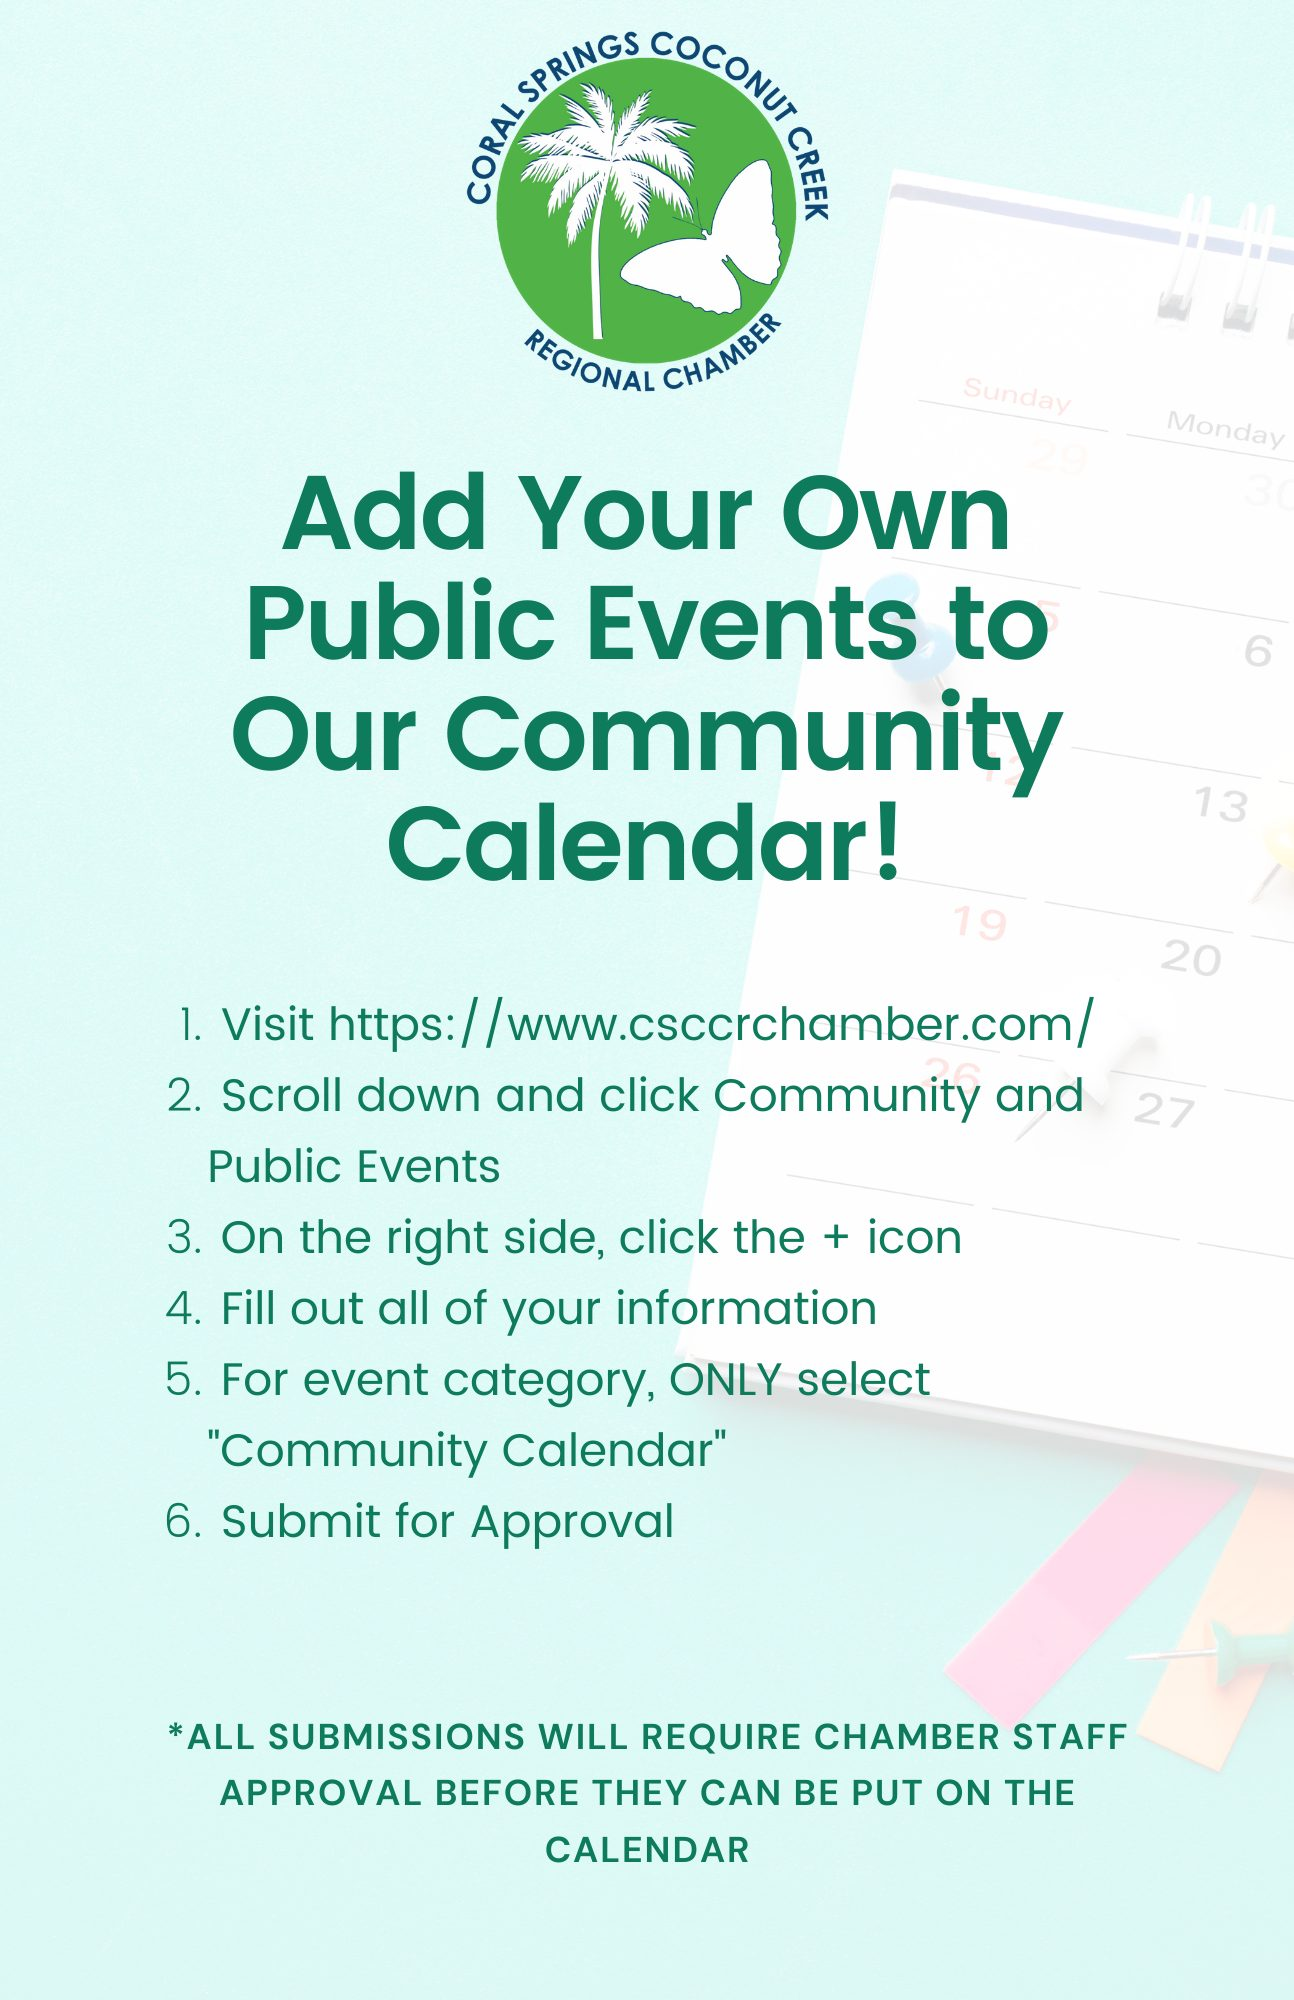 Add Your Own Public Events to Our Community Calendar!